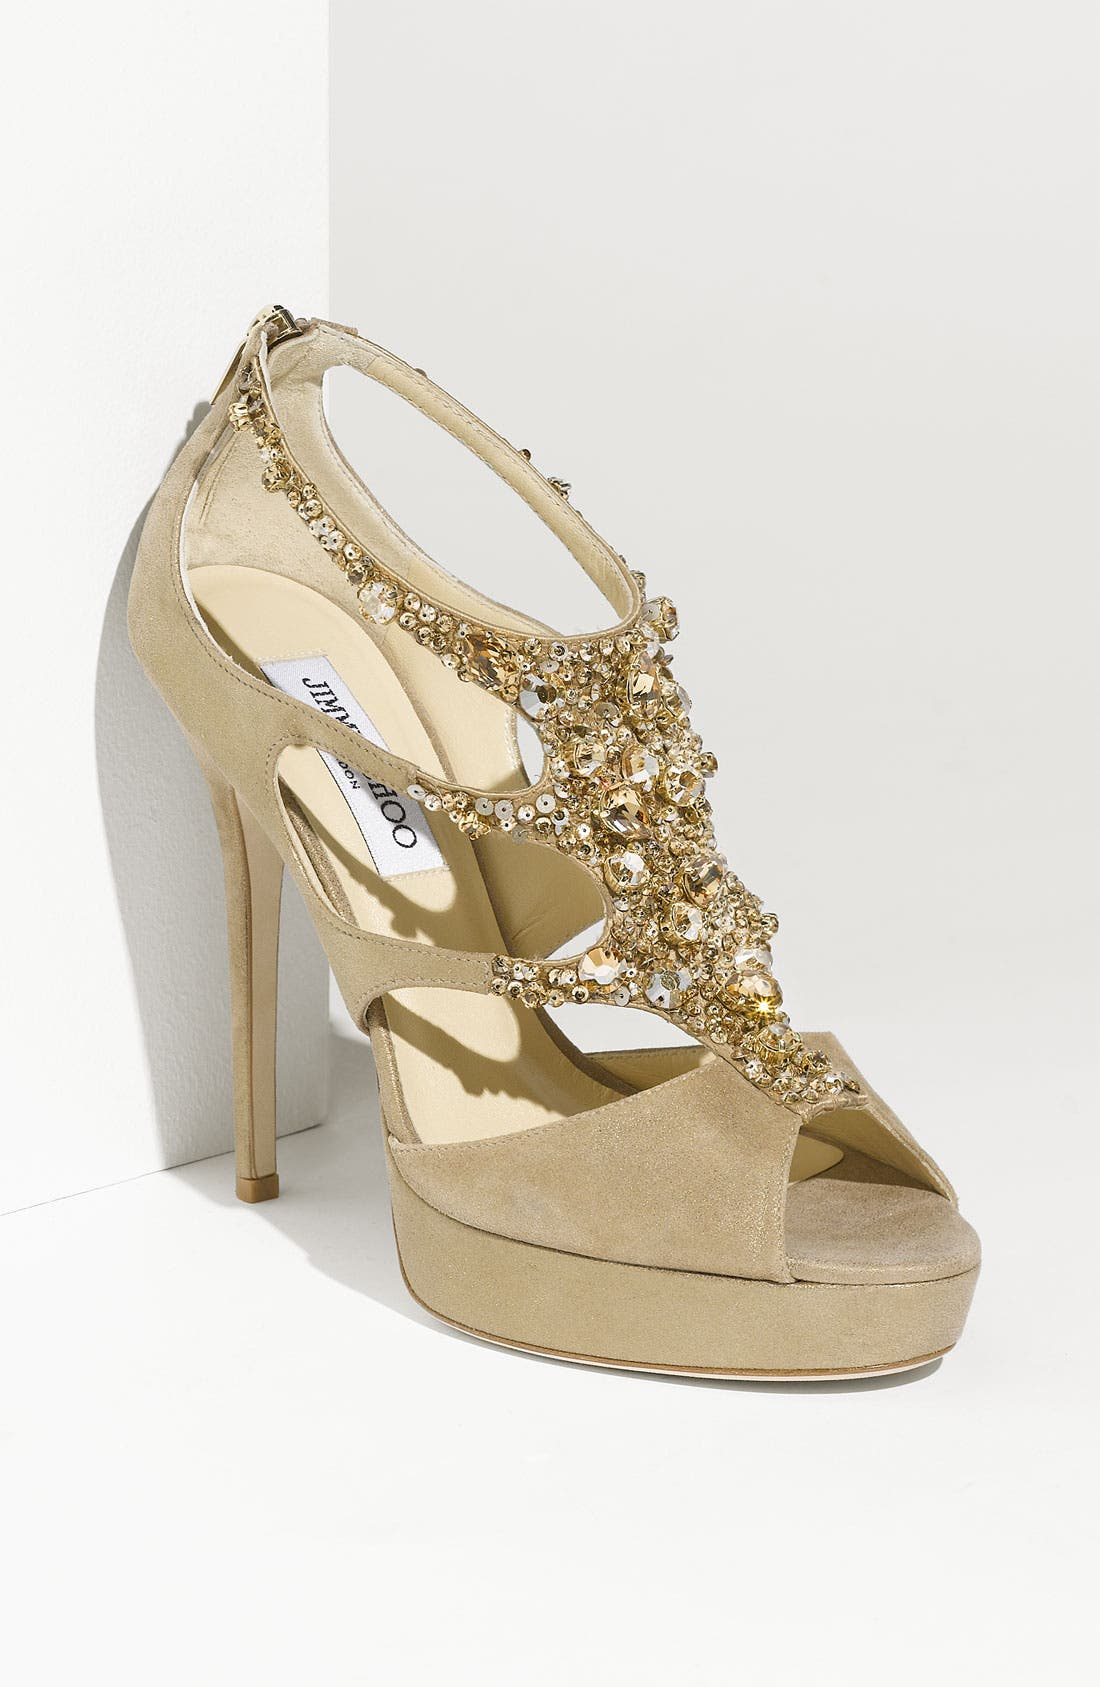 Main Image - Jimmy Choo 'Teal Tawny' Jeweled Sandal